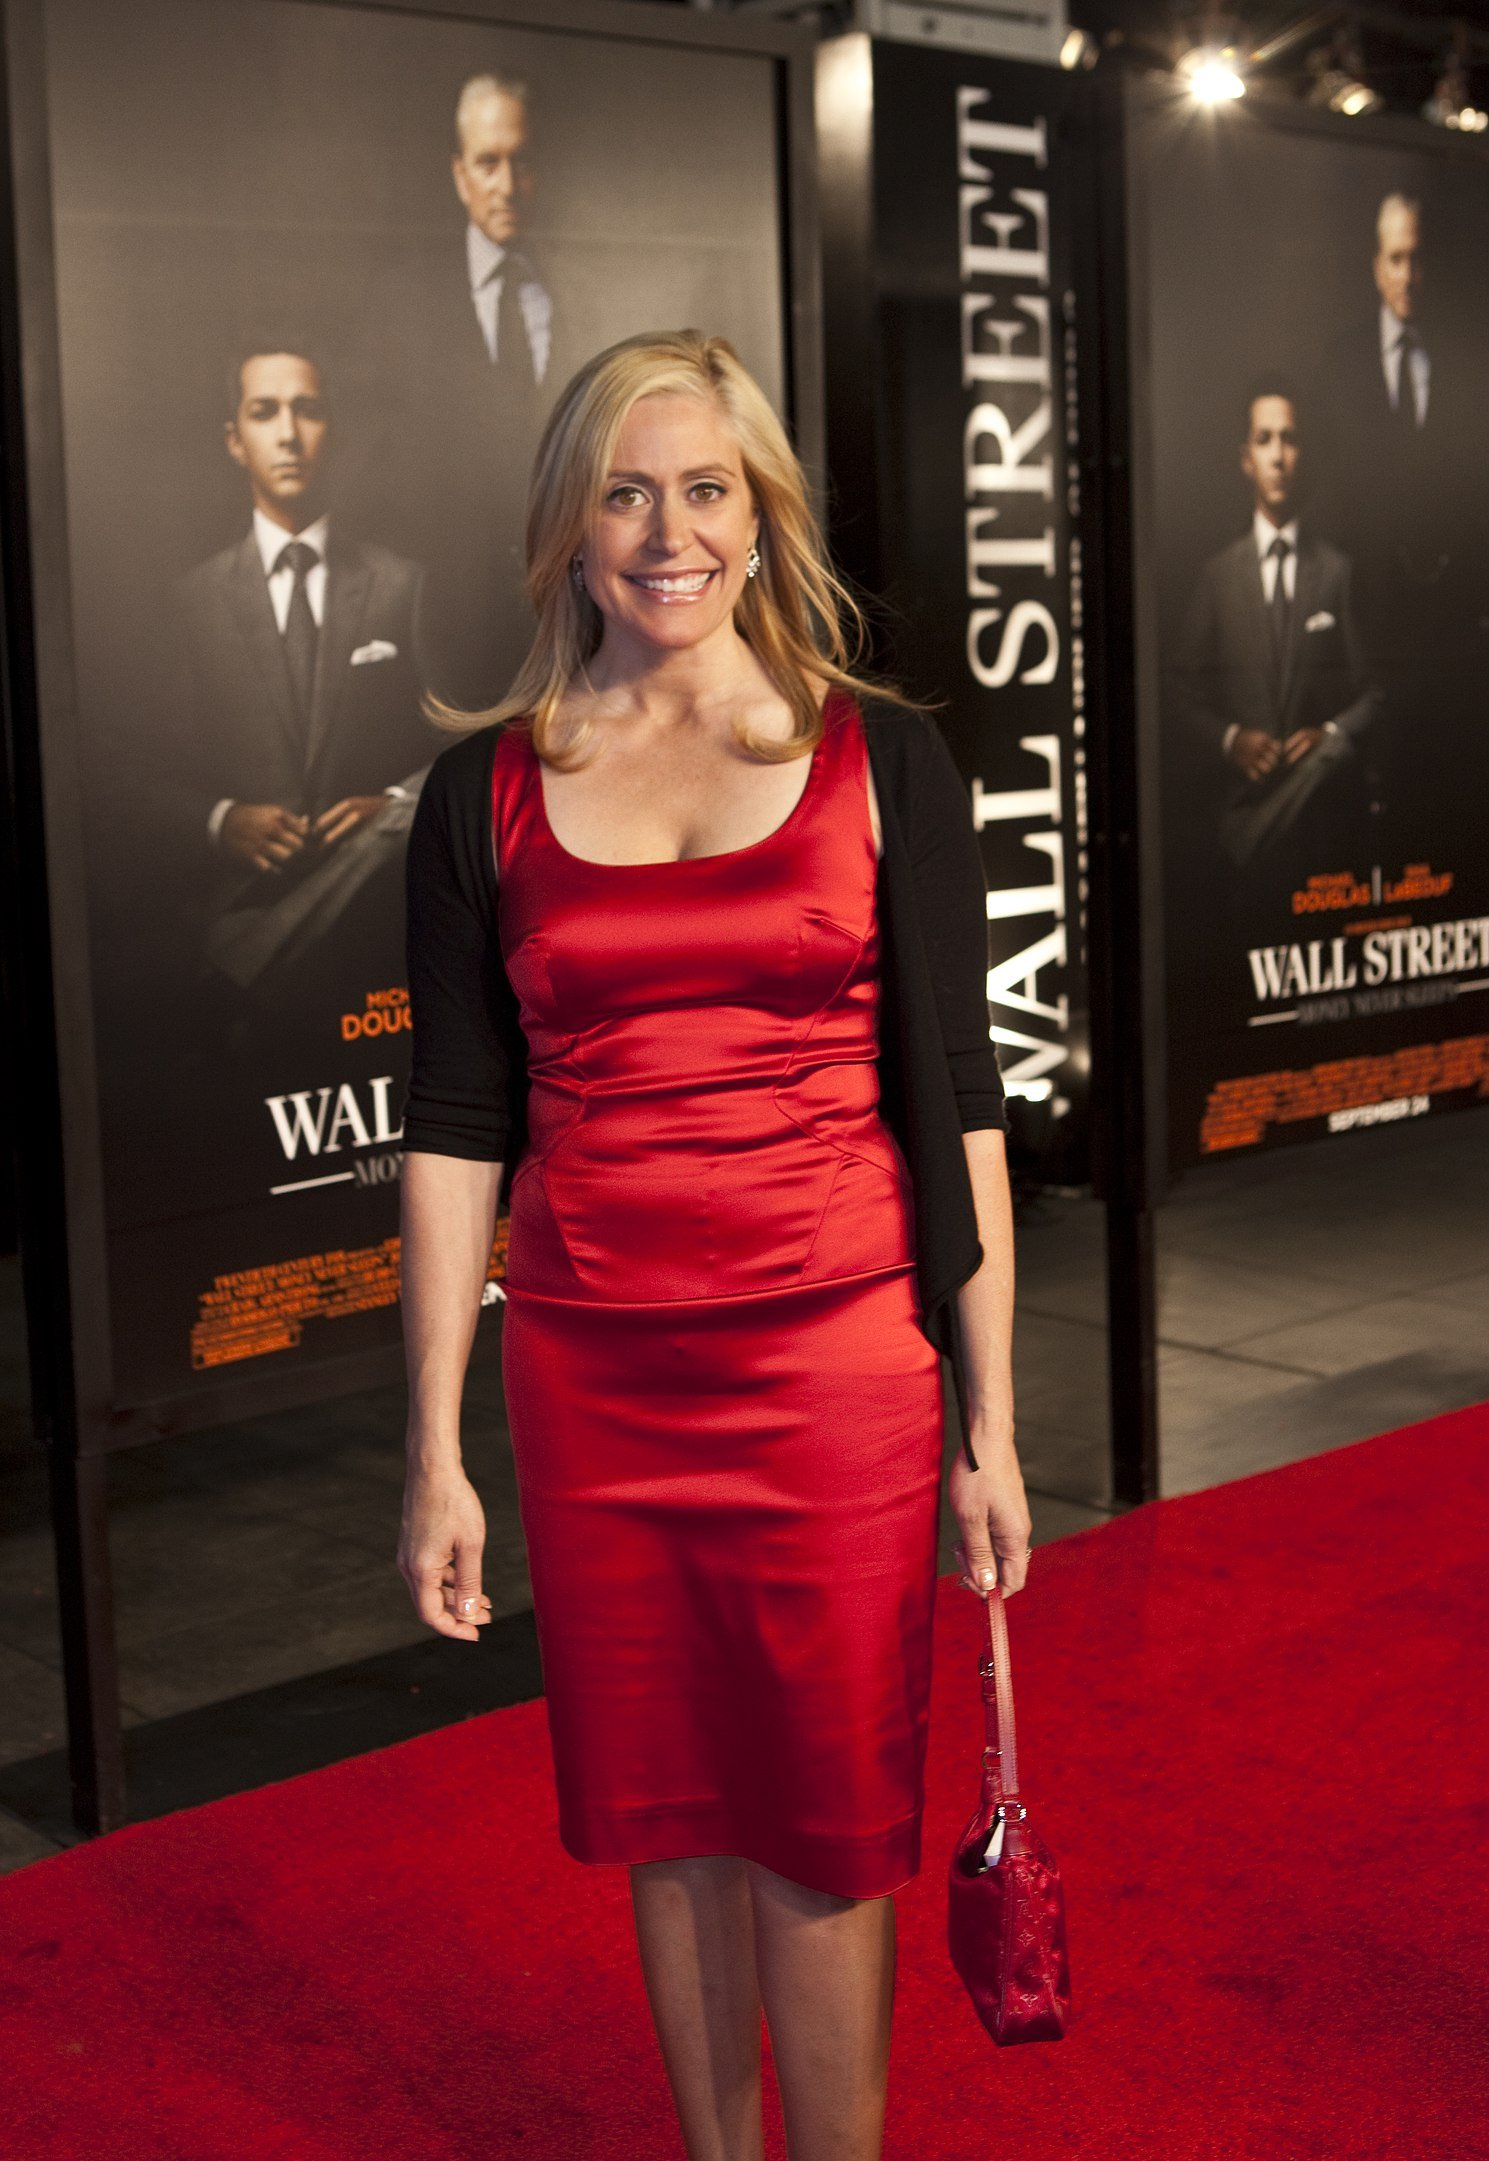 """Melissa Francis at the """"Wall Street Money Never Sleeps"""" Premiere on September 20, 2010 